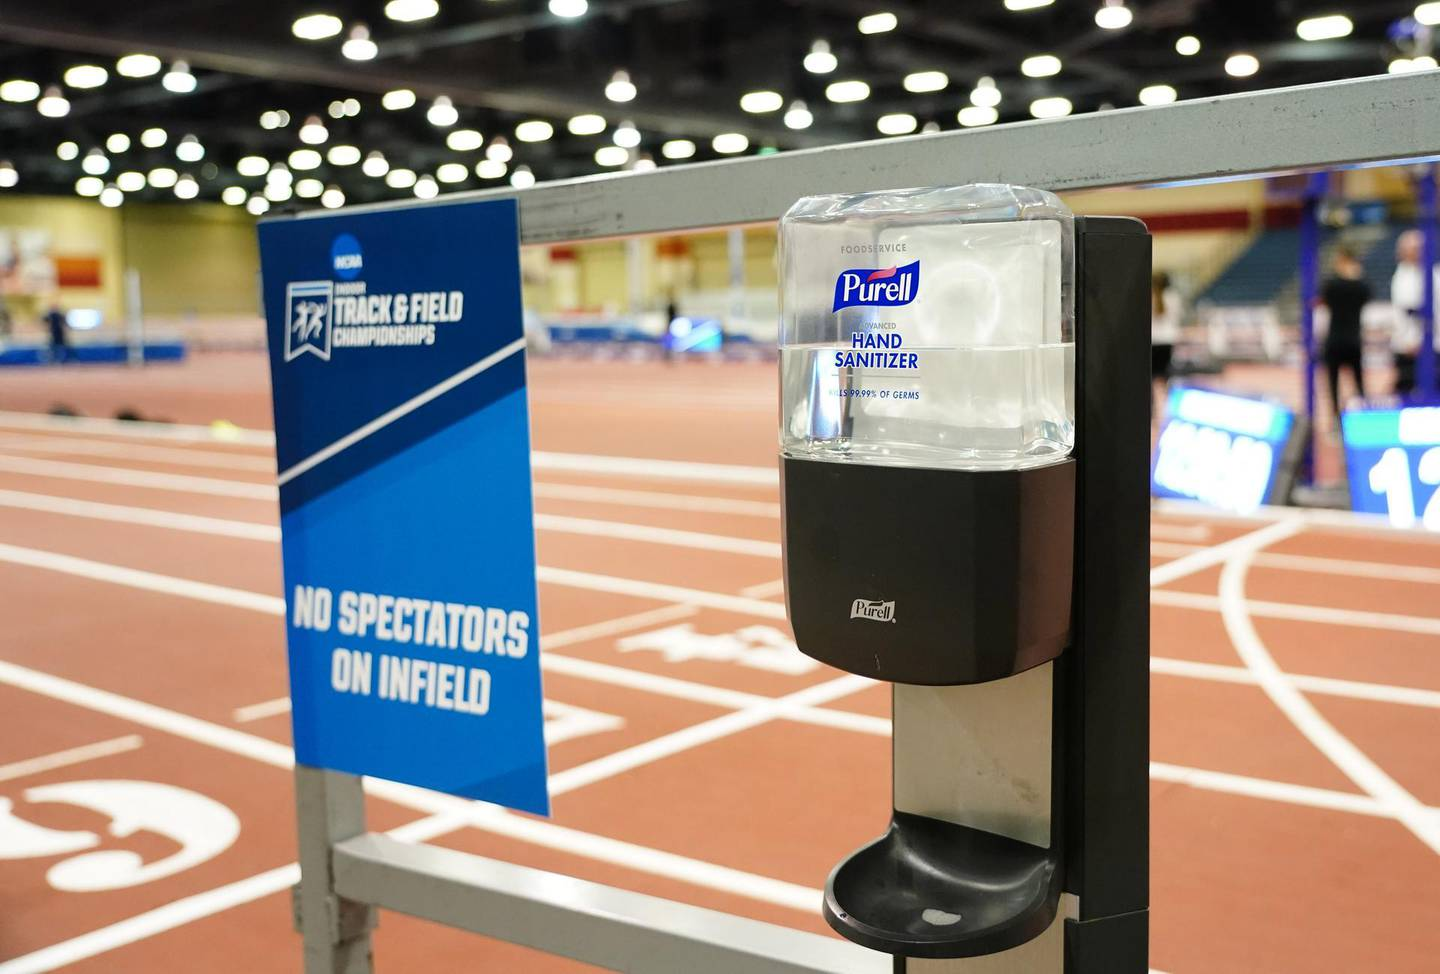 Mar 12, 2020; Albuquerque, New Mexico, USA; Purell hand sanitizer at the track prior to the NCAA Indoor Championships at Albuquerque Convention Center that were cancelled because of novel coronavirus. Mandatory Credit: Kirby Lee-USA TODAY Sports